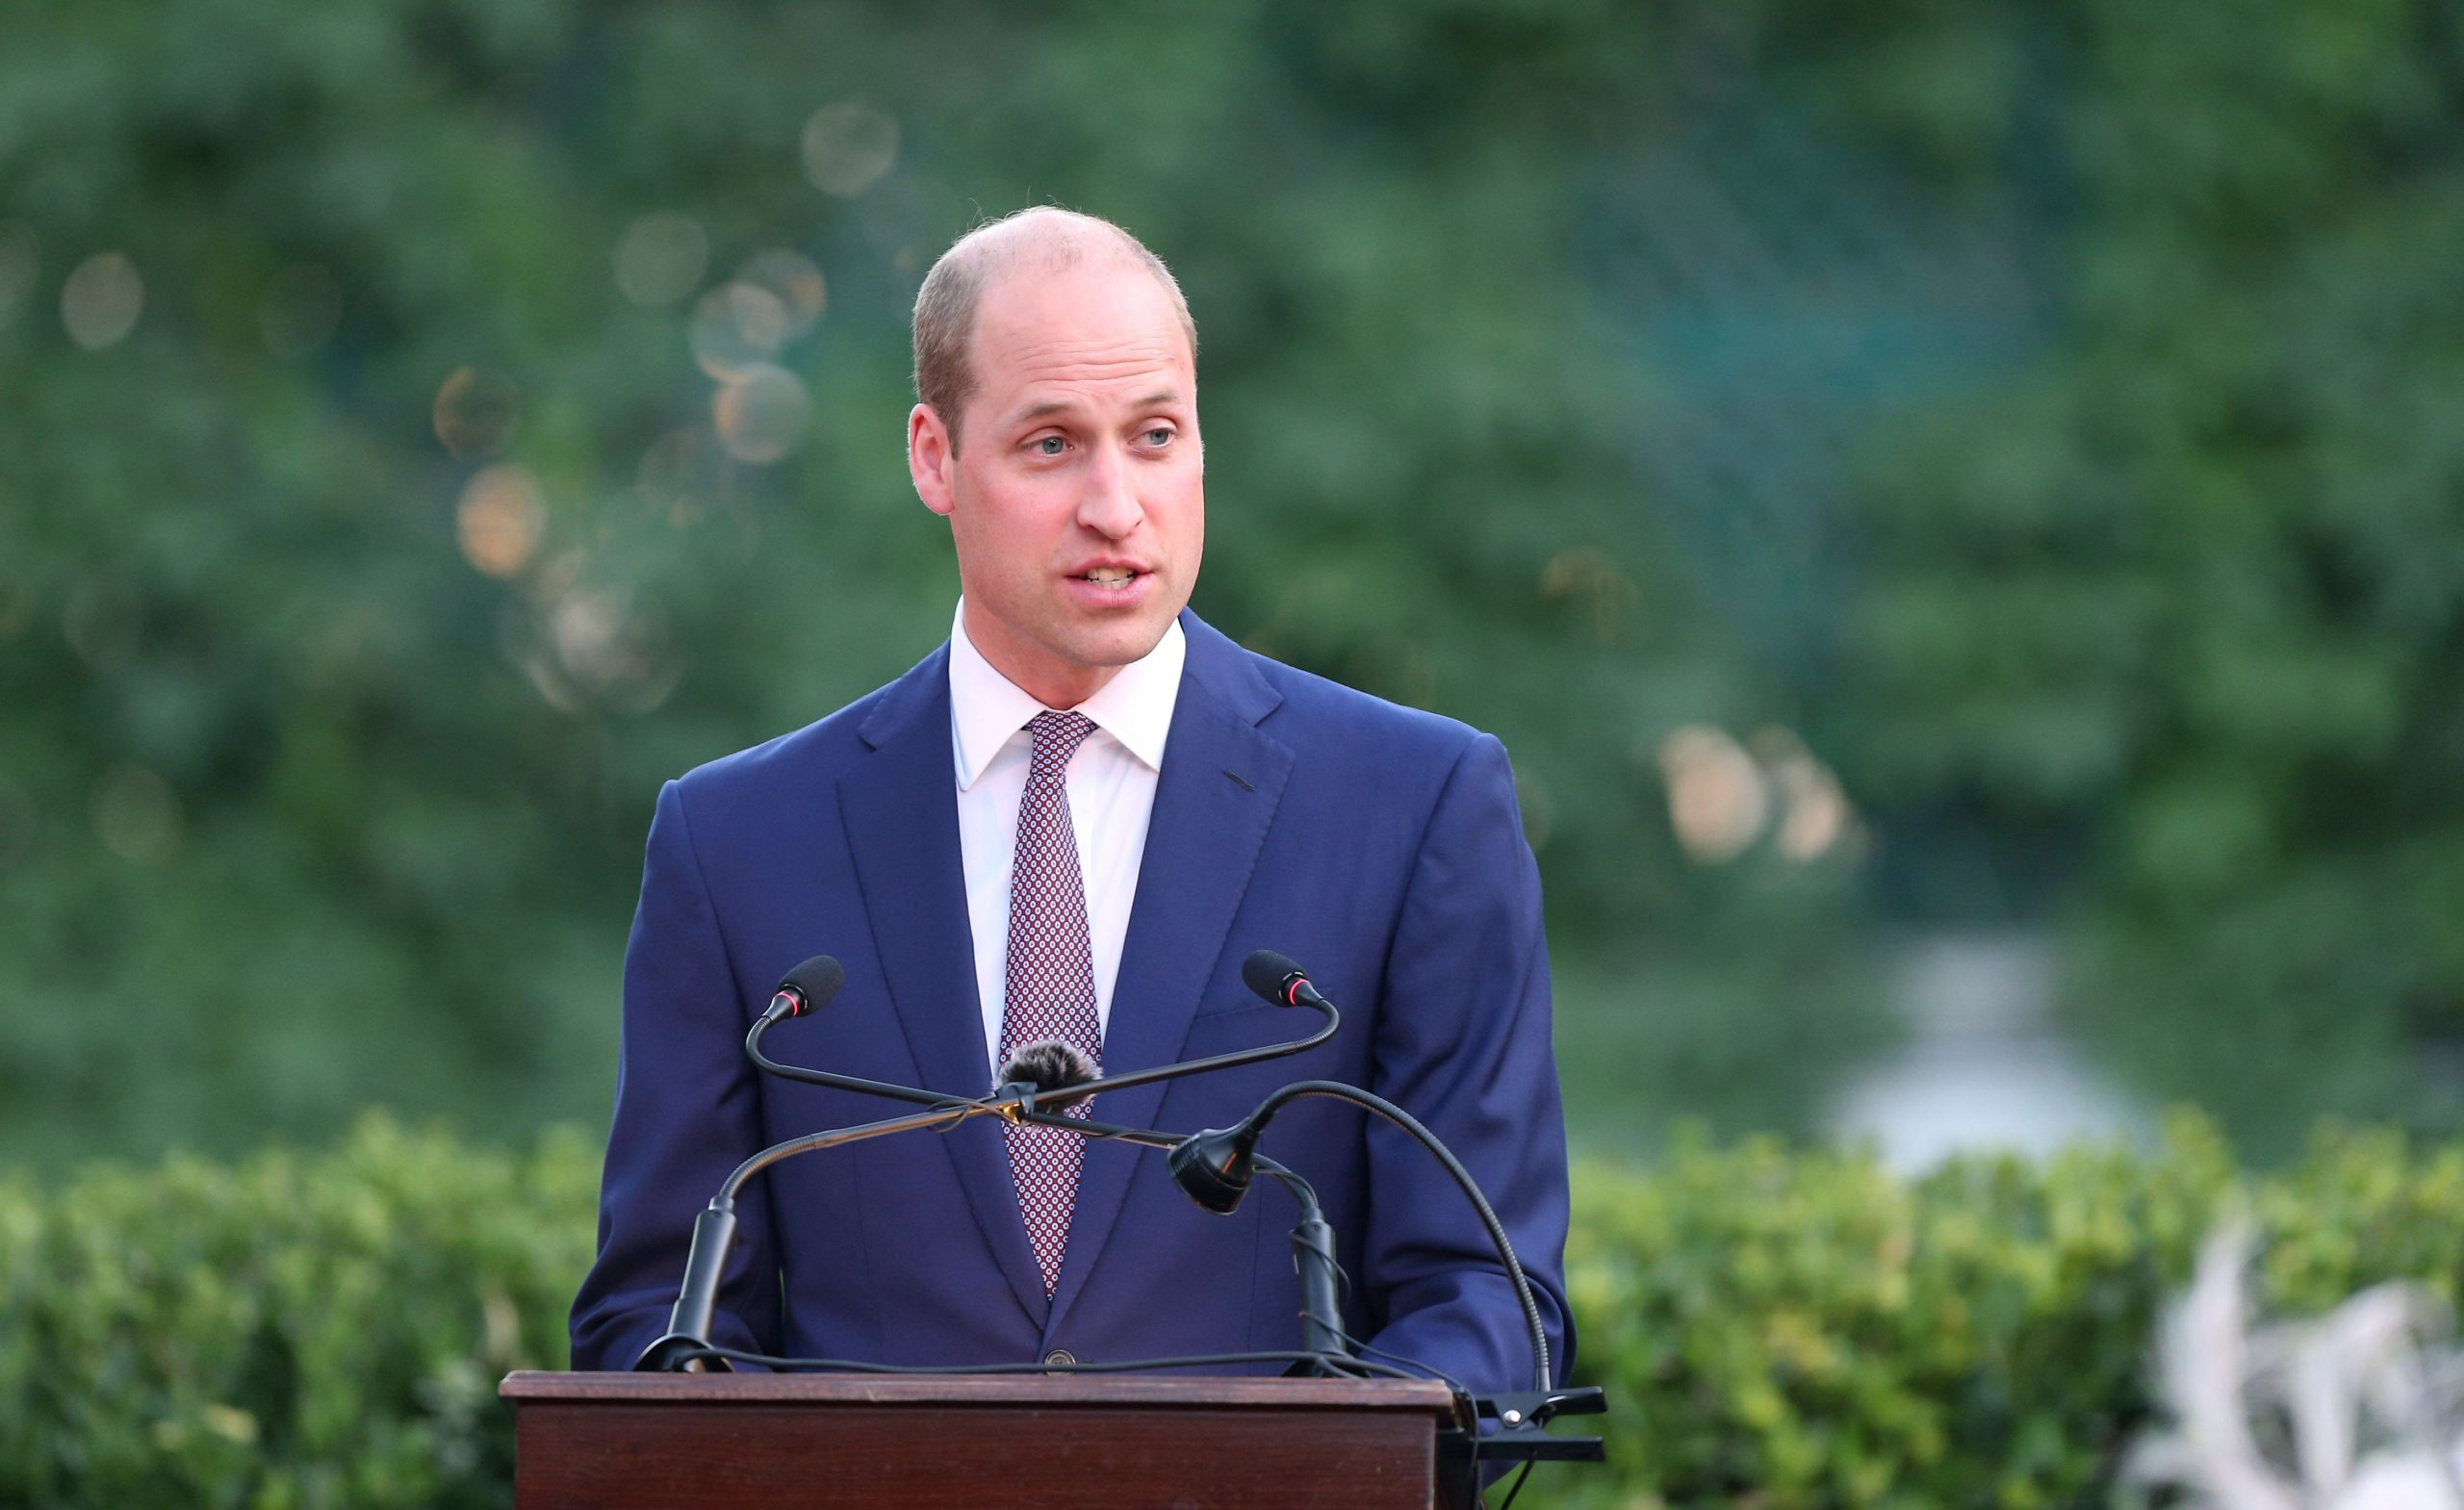 Prince William Launches First Global Environment Prize To Incentivize Innovative Solutions For The Planet